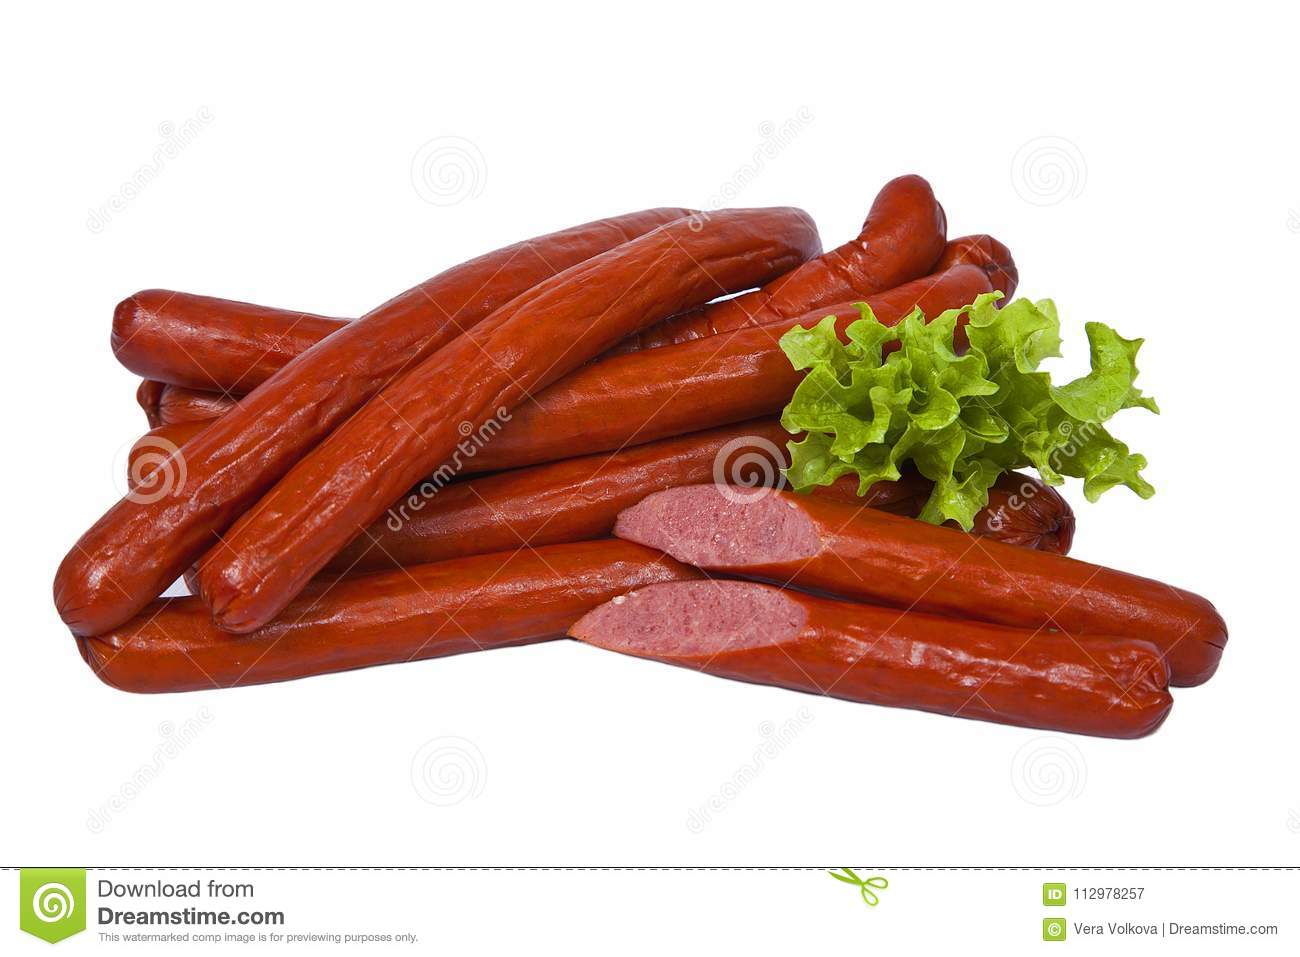 Long and fatty sausages with salad leaf. Isolated on white background